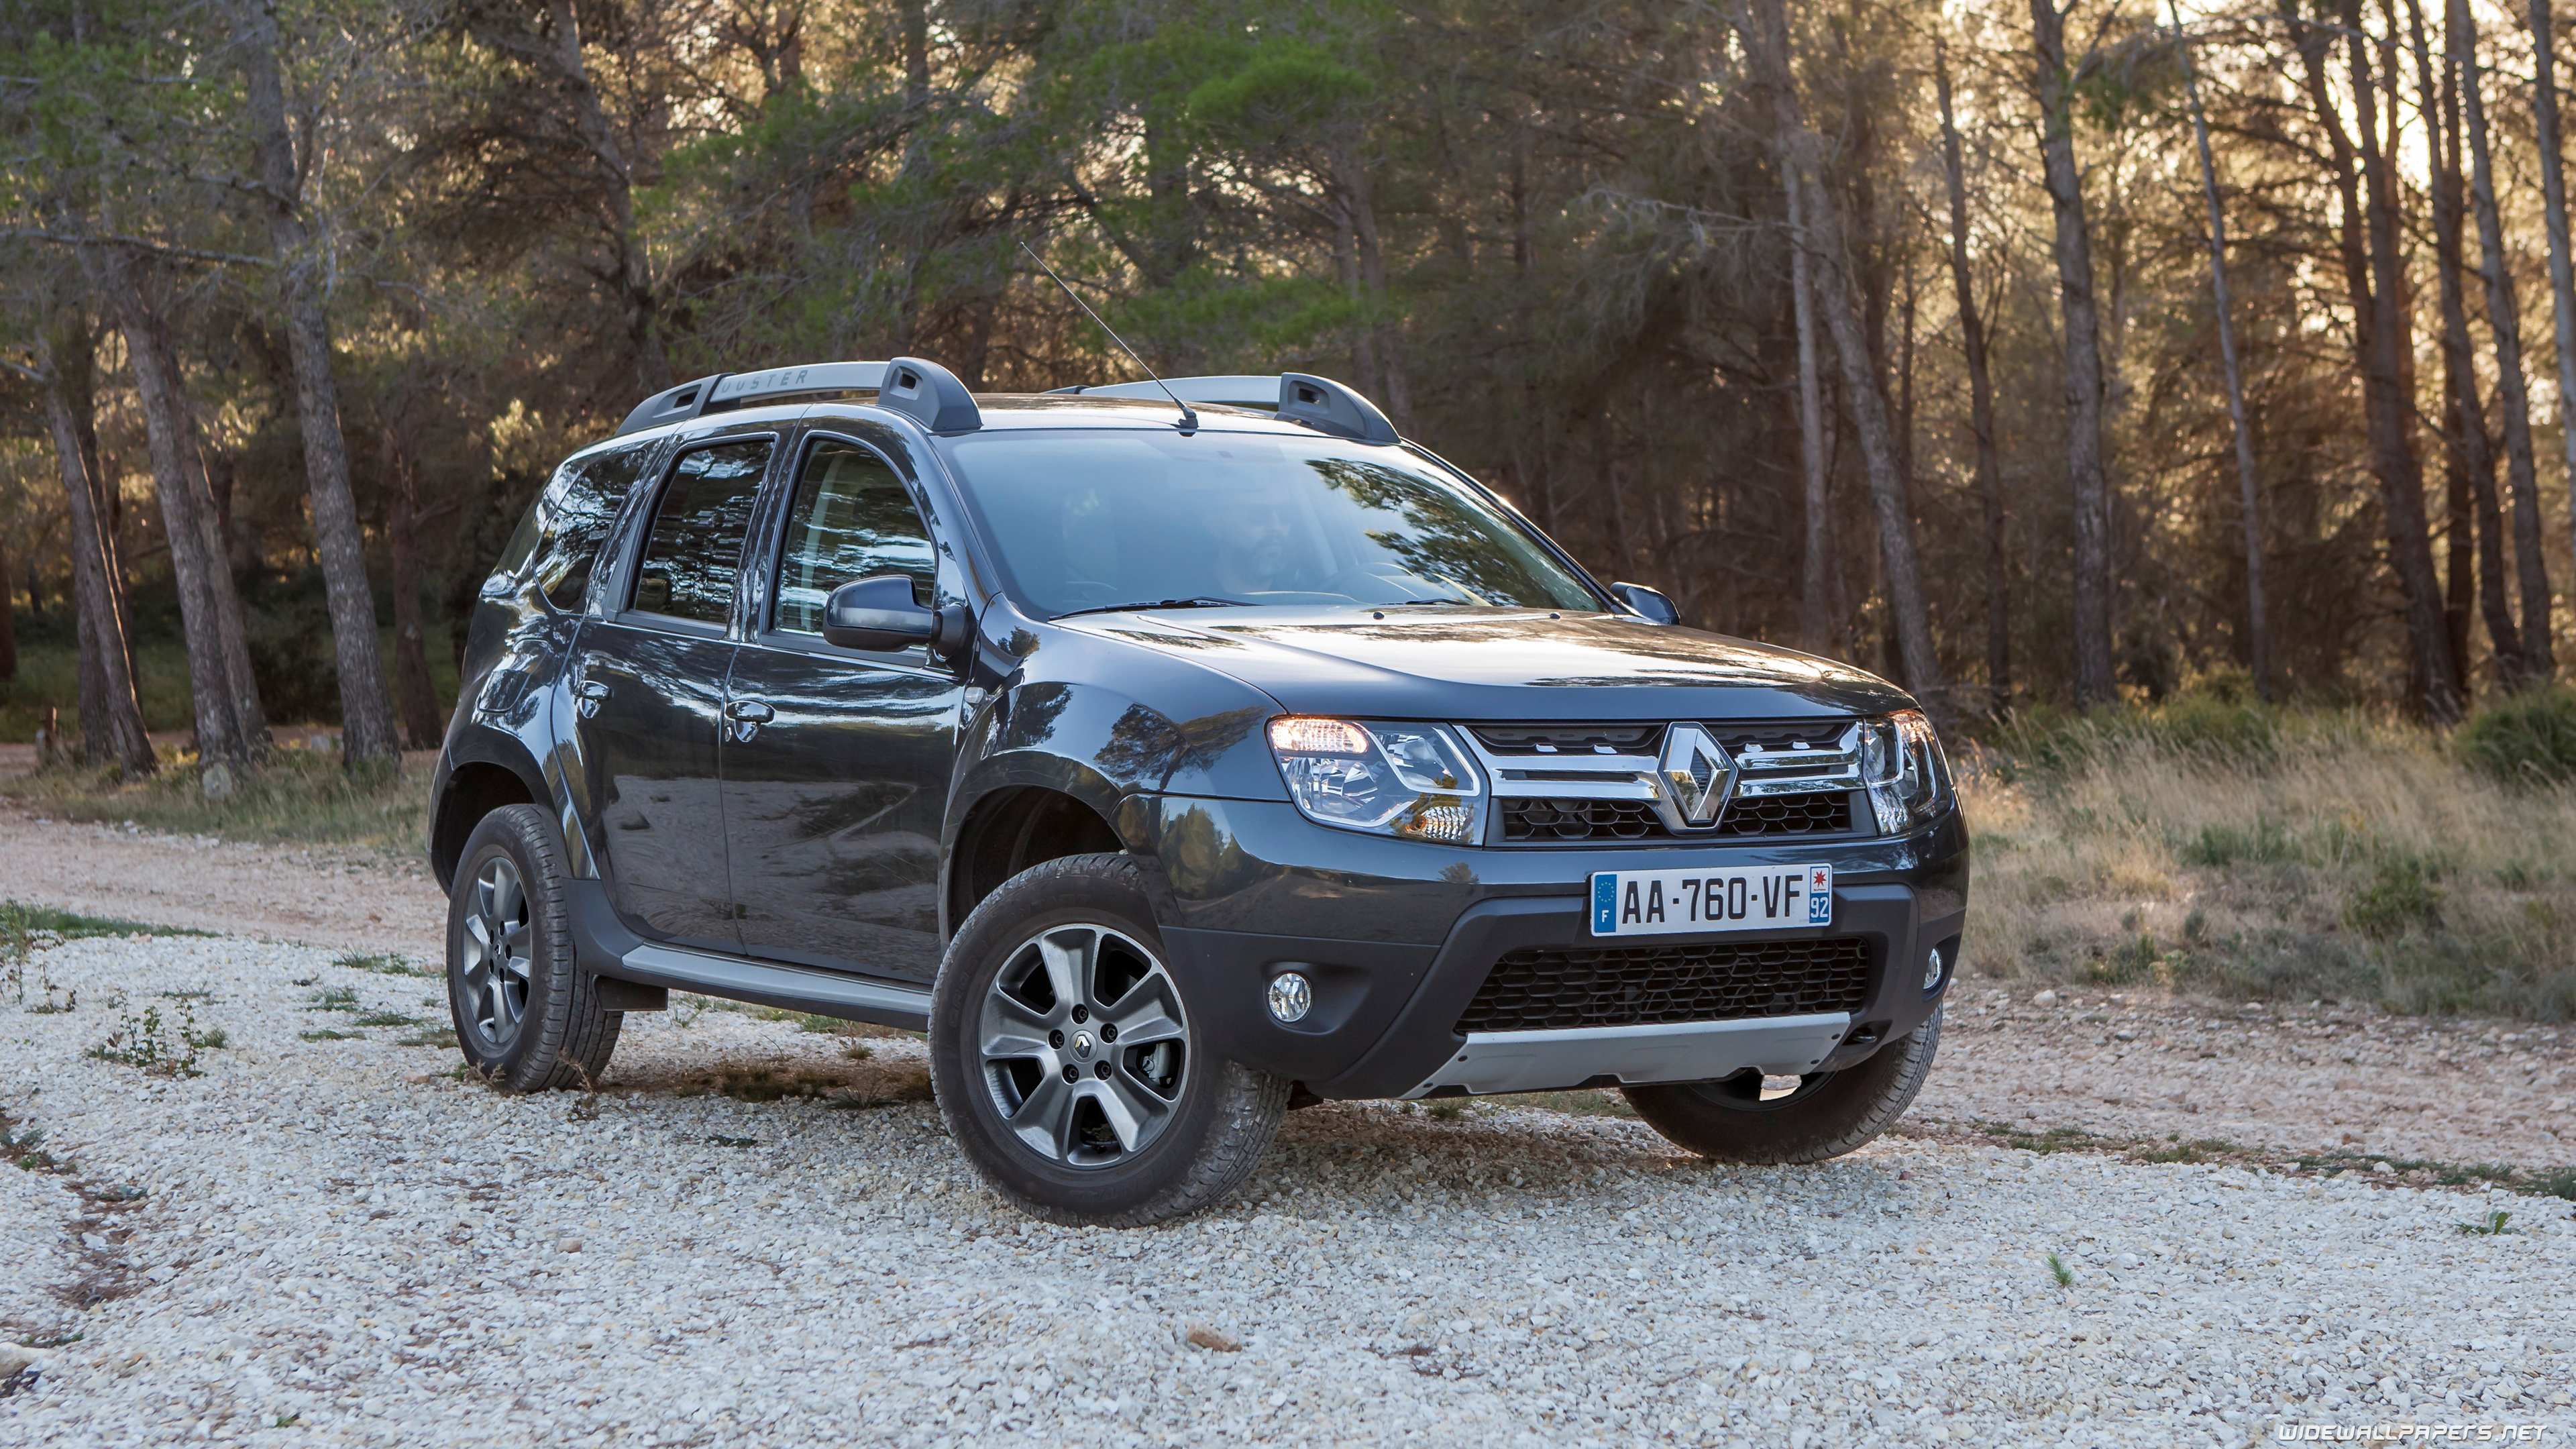 Renault duster cars desktop wallpapers 4k ultra hd page 2 renault duster car wallpapers 4k ultra hd voltagebd Image collections